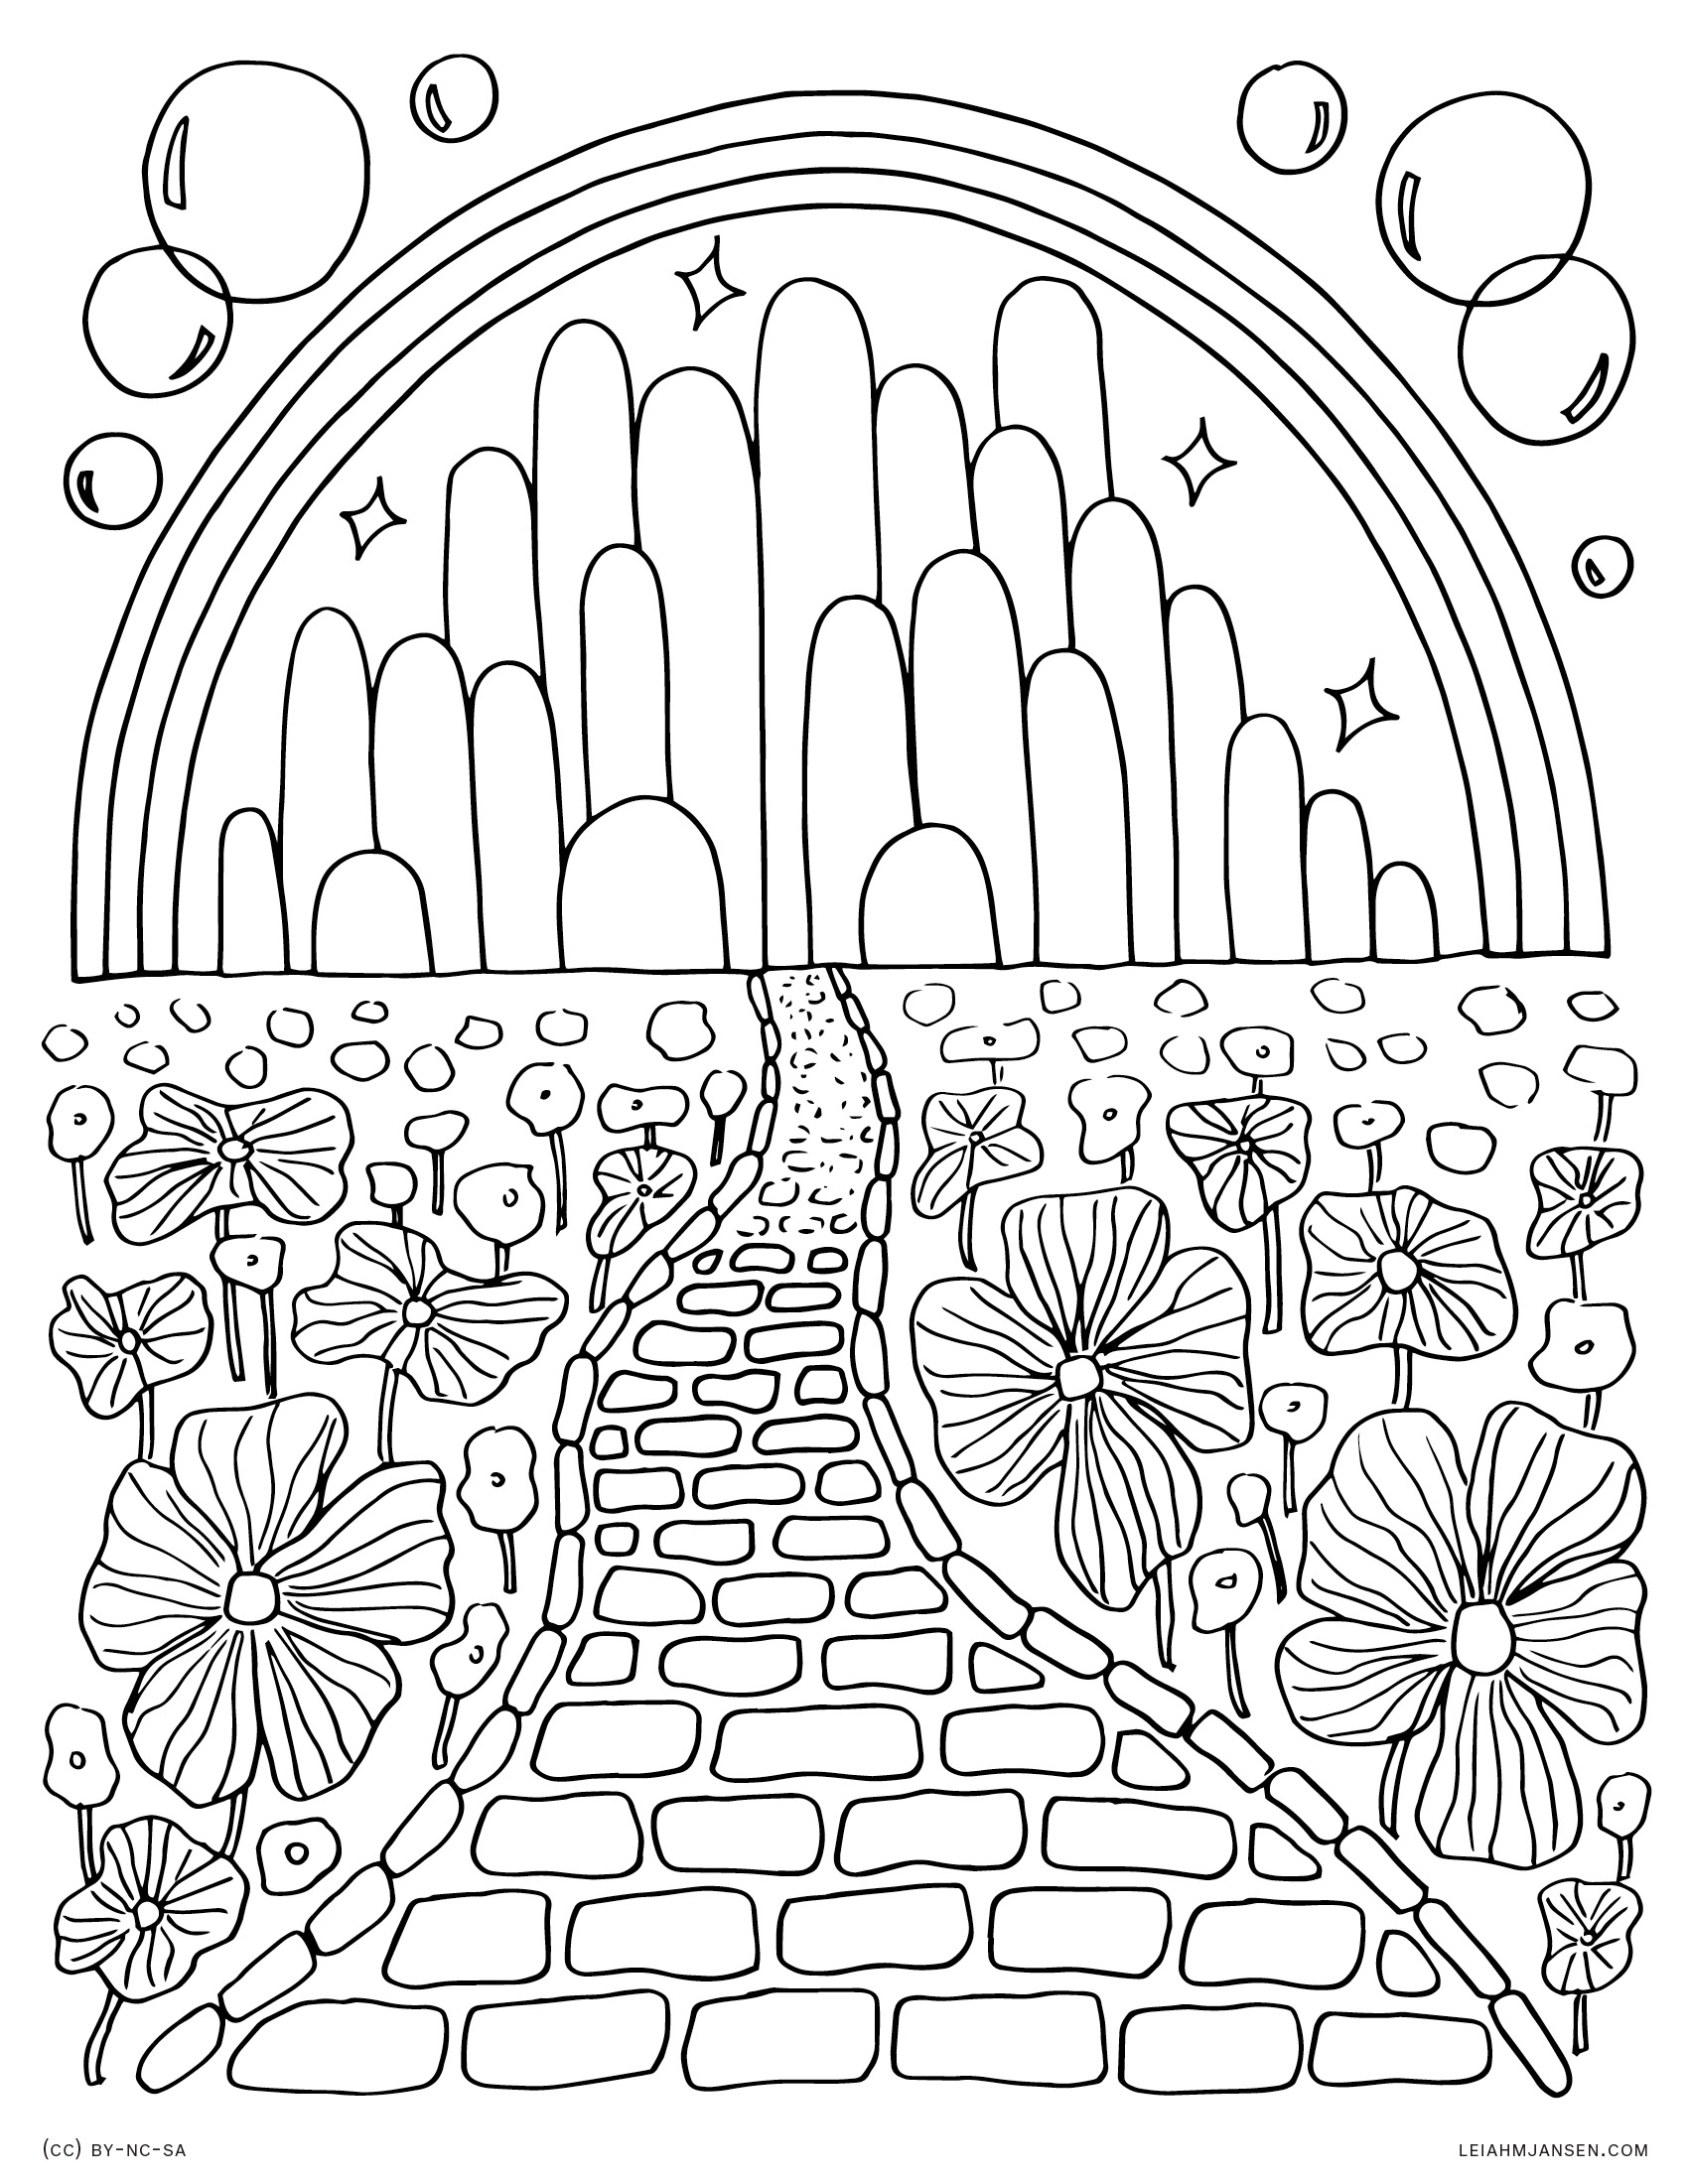 emerald coloring pages - photo#32